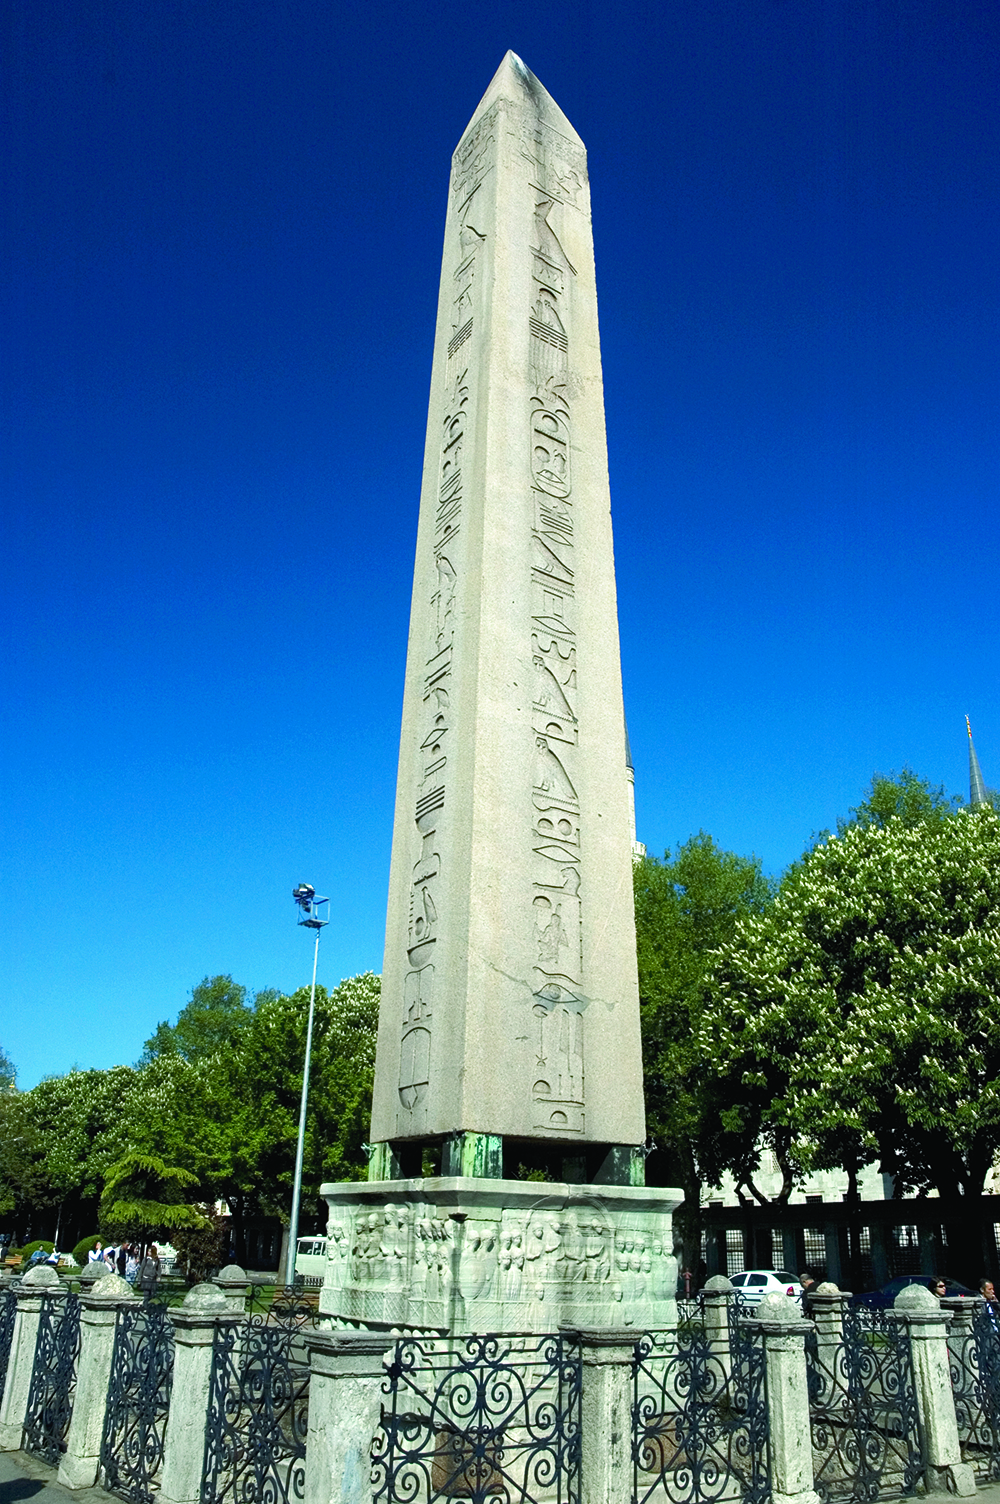 35-The Egyptian Obelisk.jpg